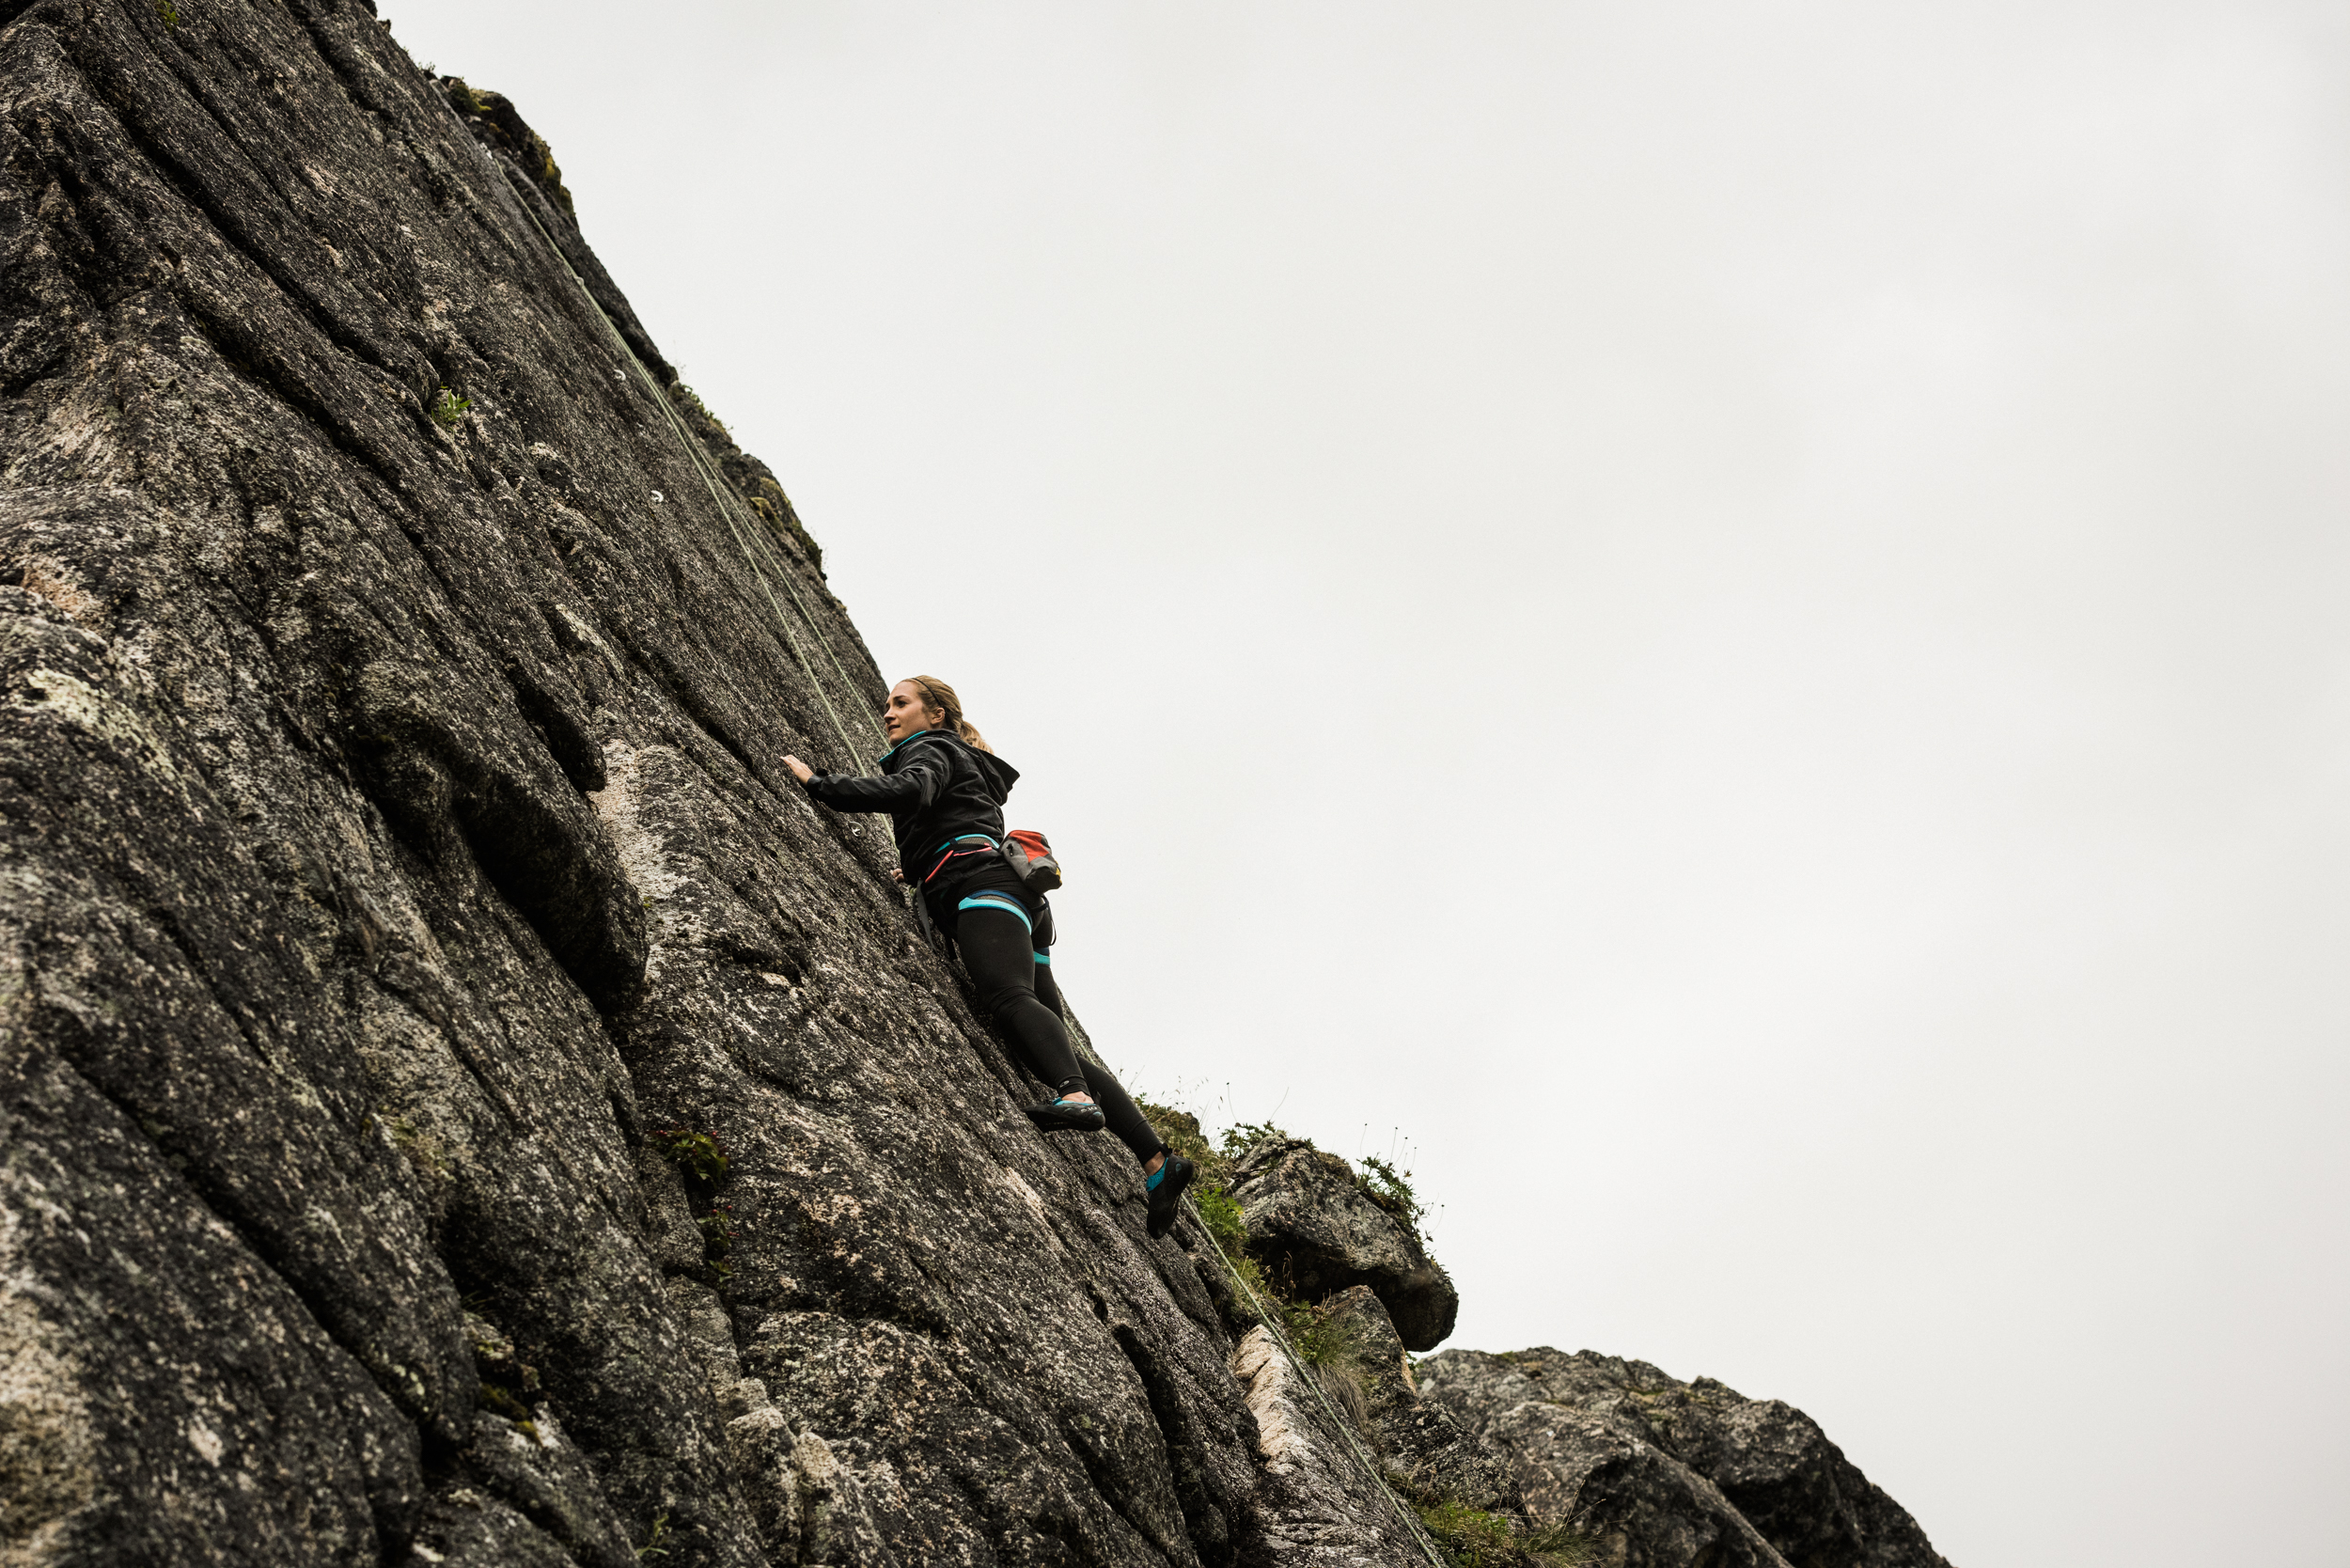 TaraShupe_Photography_Alaska_RockClimbing_HatchersPass_Travel_Photographer_Women_Adventure_027.jpg